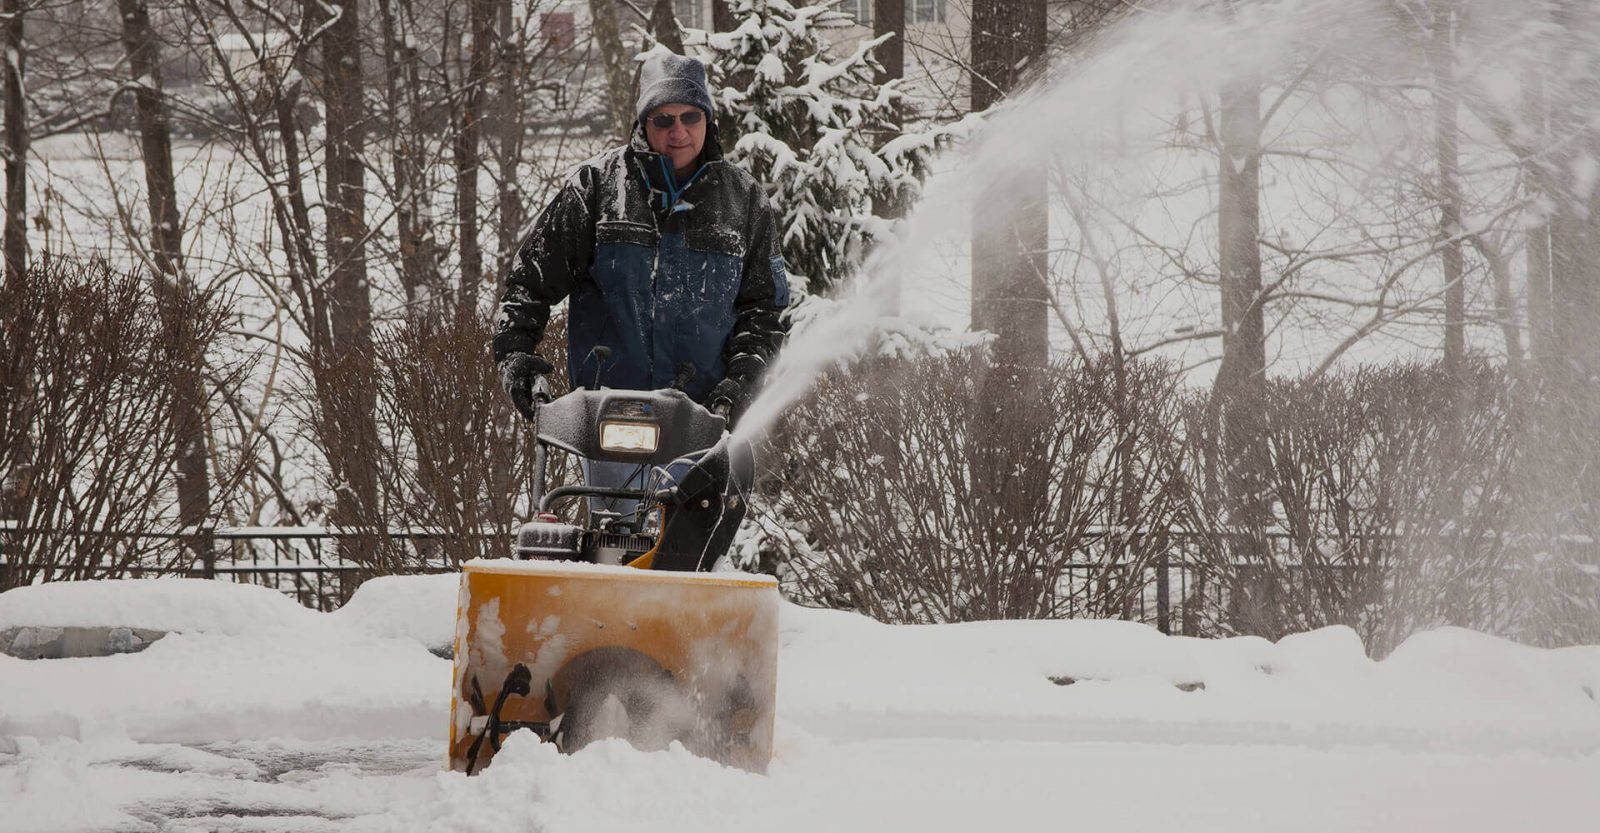 A snowblower clearing a driveway